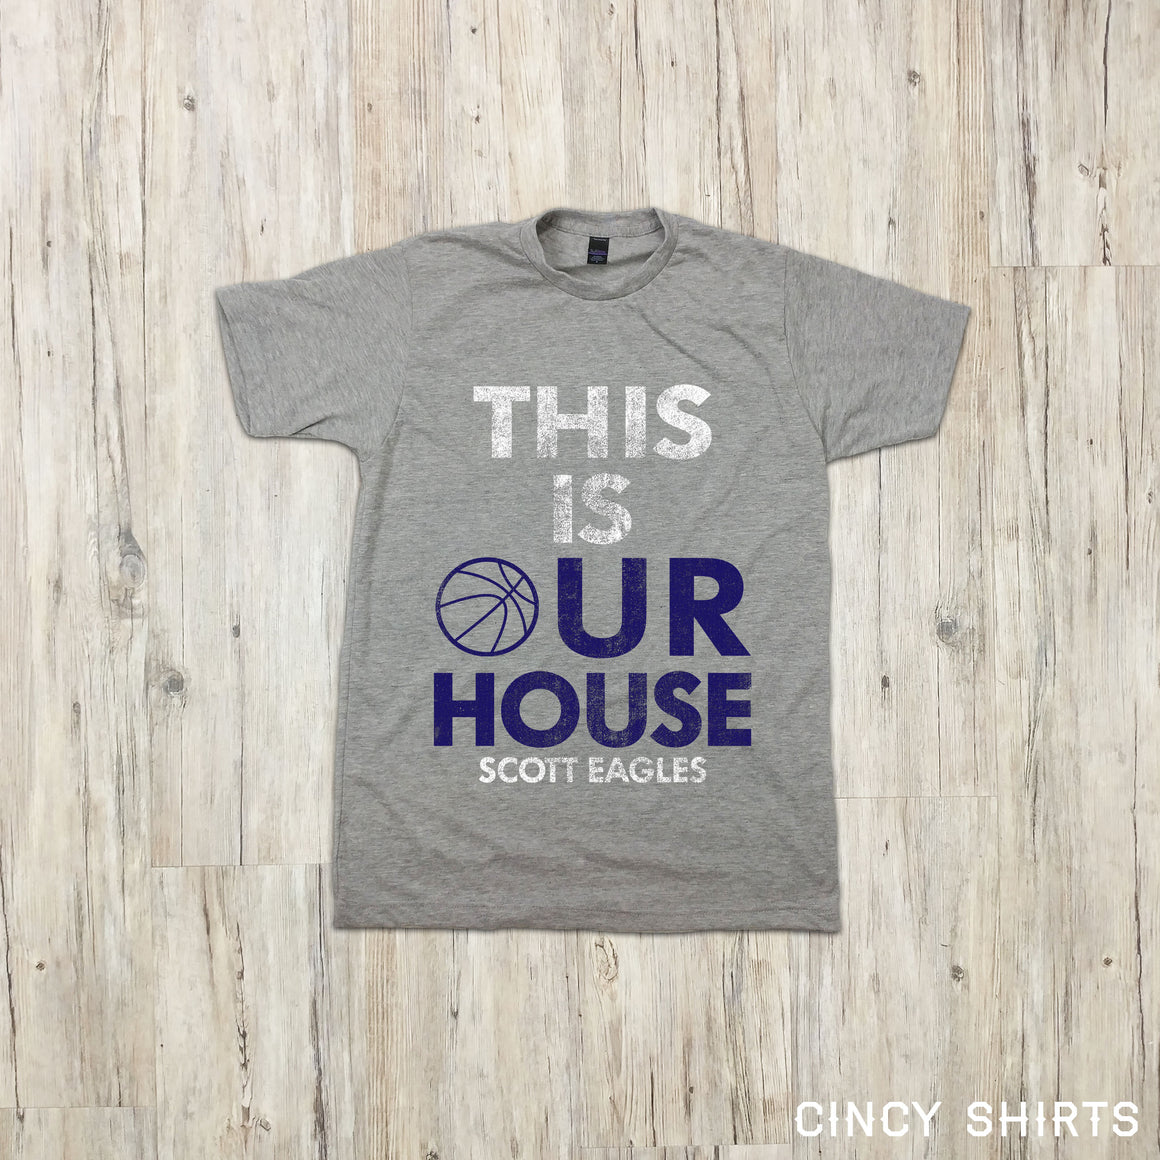 This Is Our House - Youth Sizes - Cincy Shirts